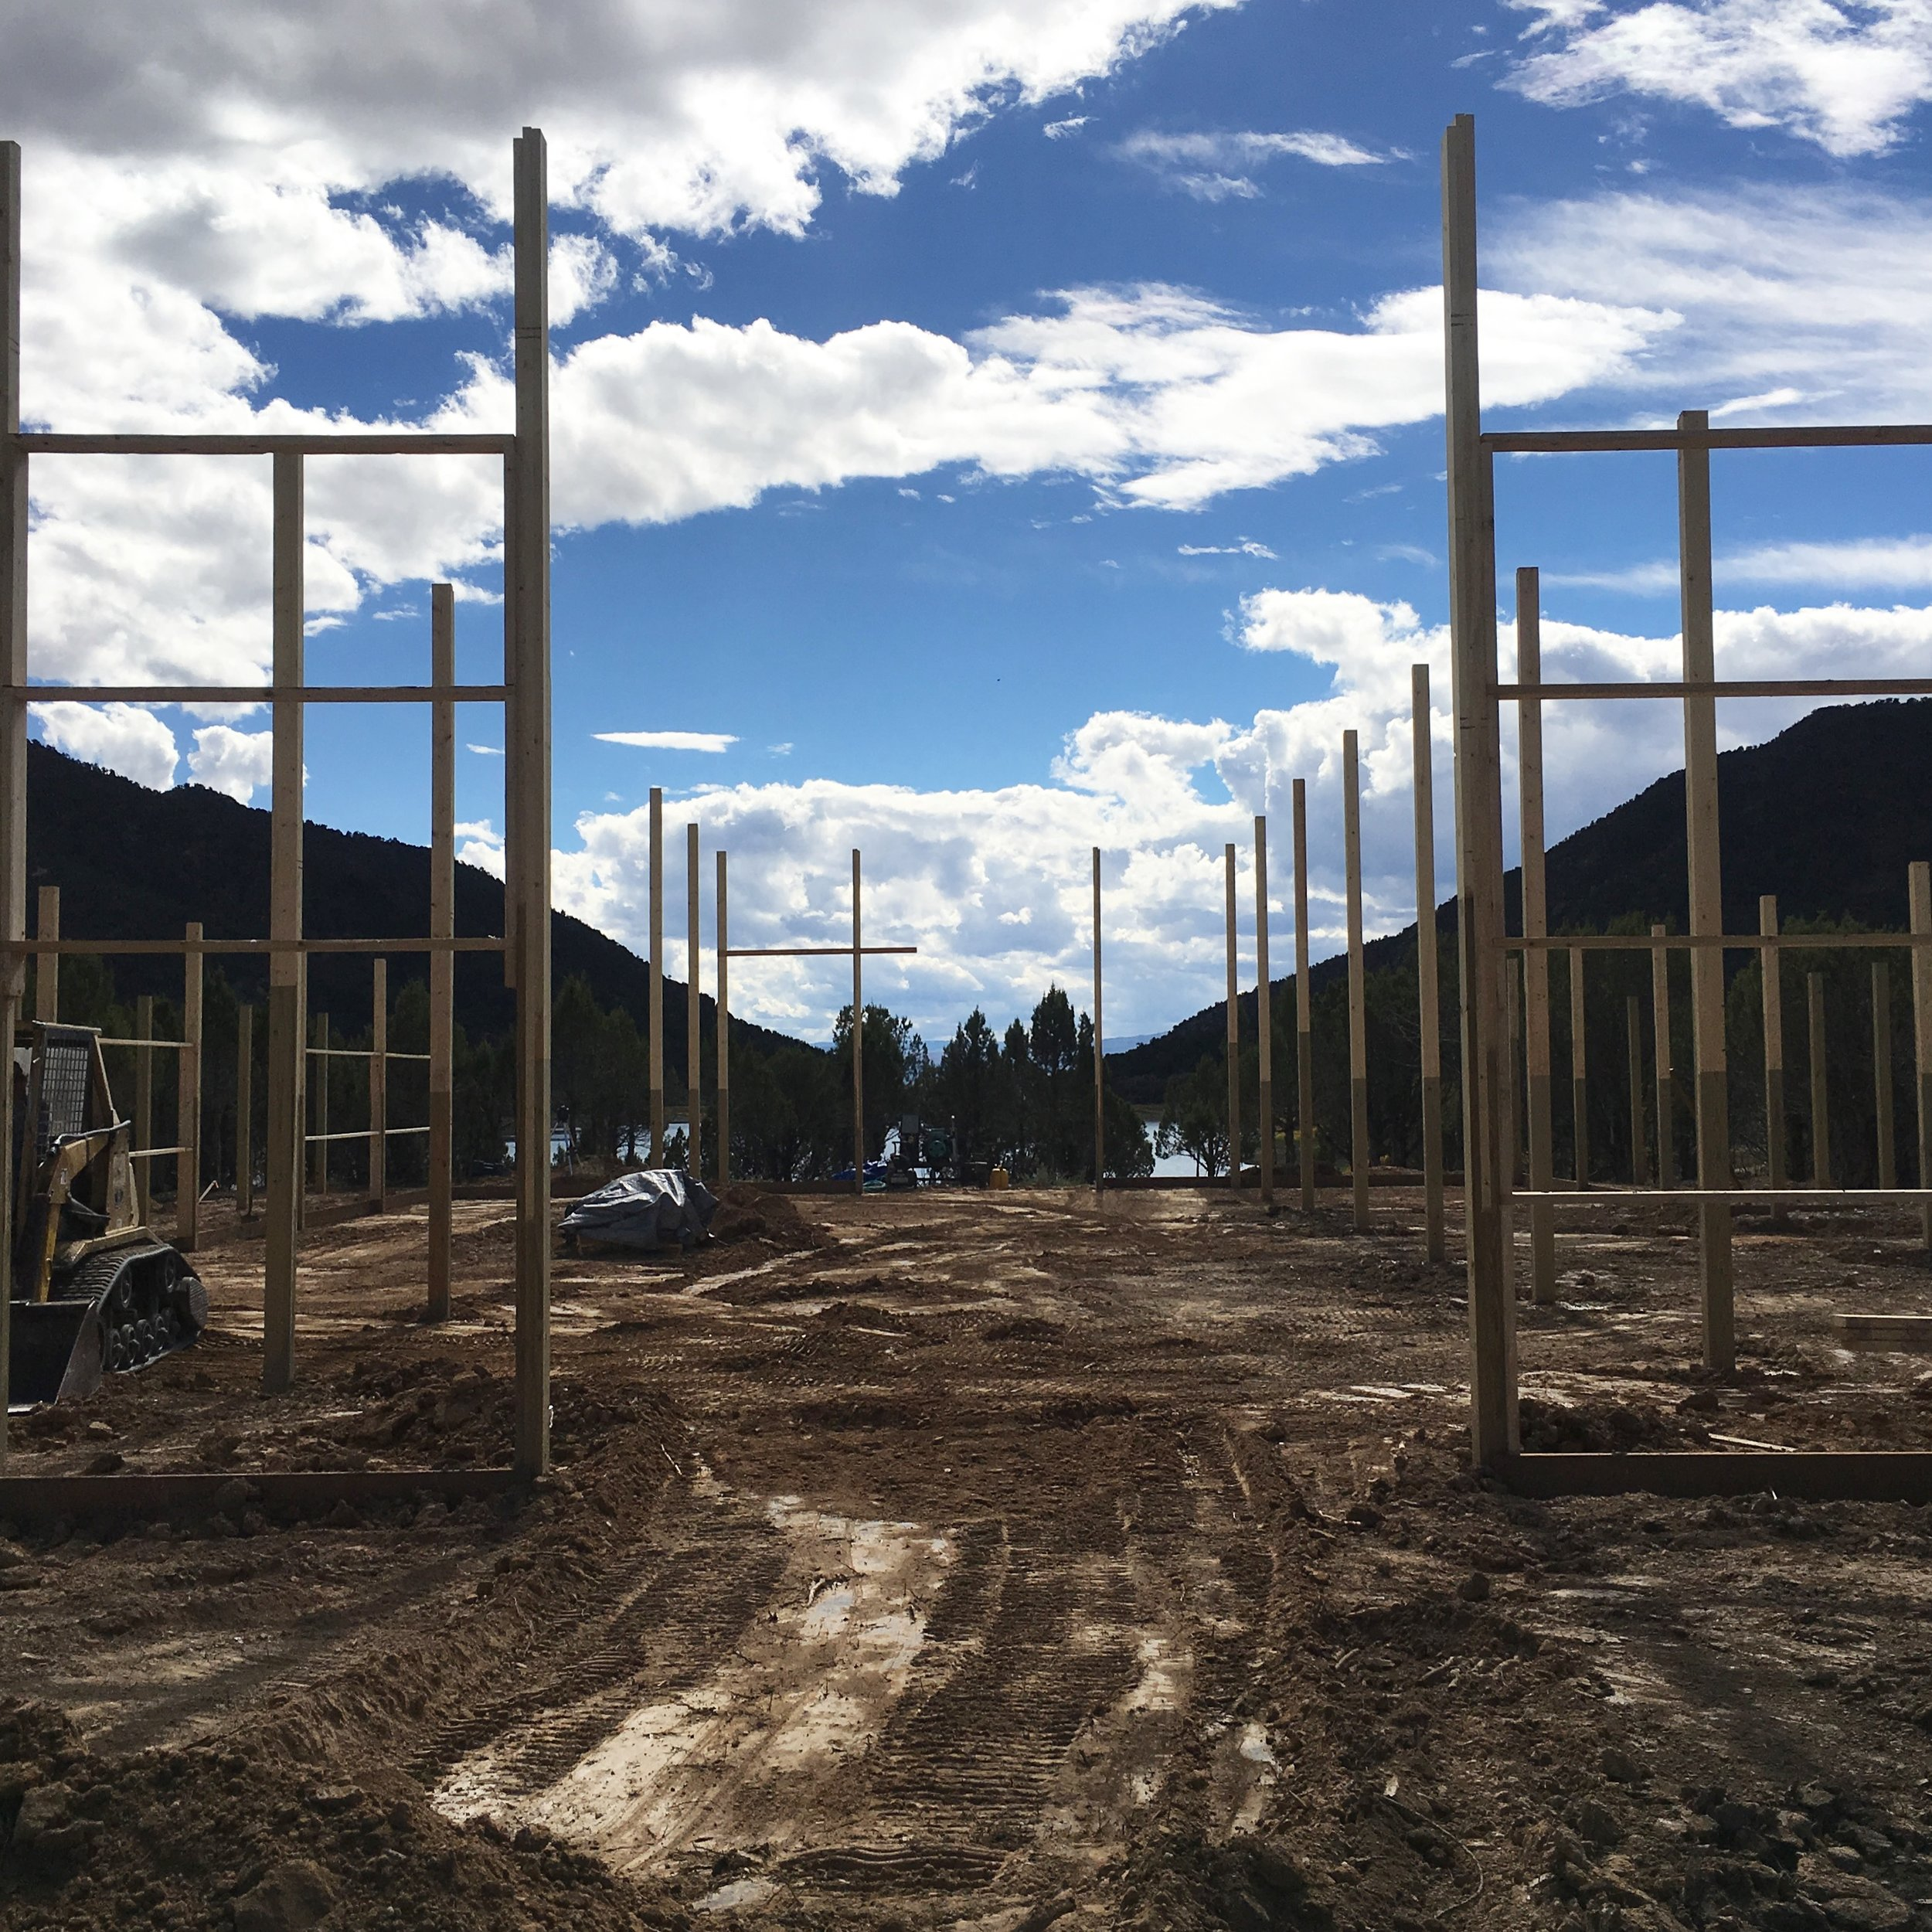 Vista View Events at Open Heart Ranch is a new Colorado wedding venue! This is a fun, photo timeline of our construction updates. Thank you so much for your support and love during this crazy project!